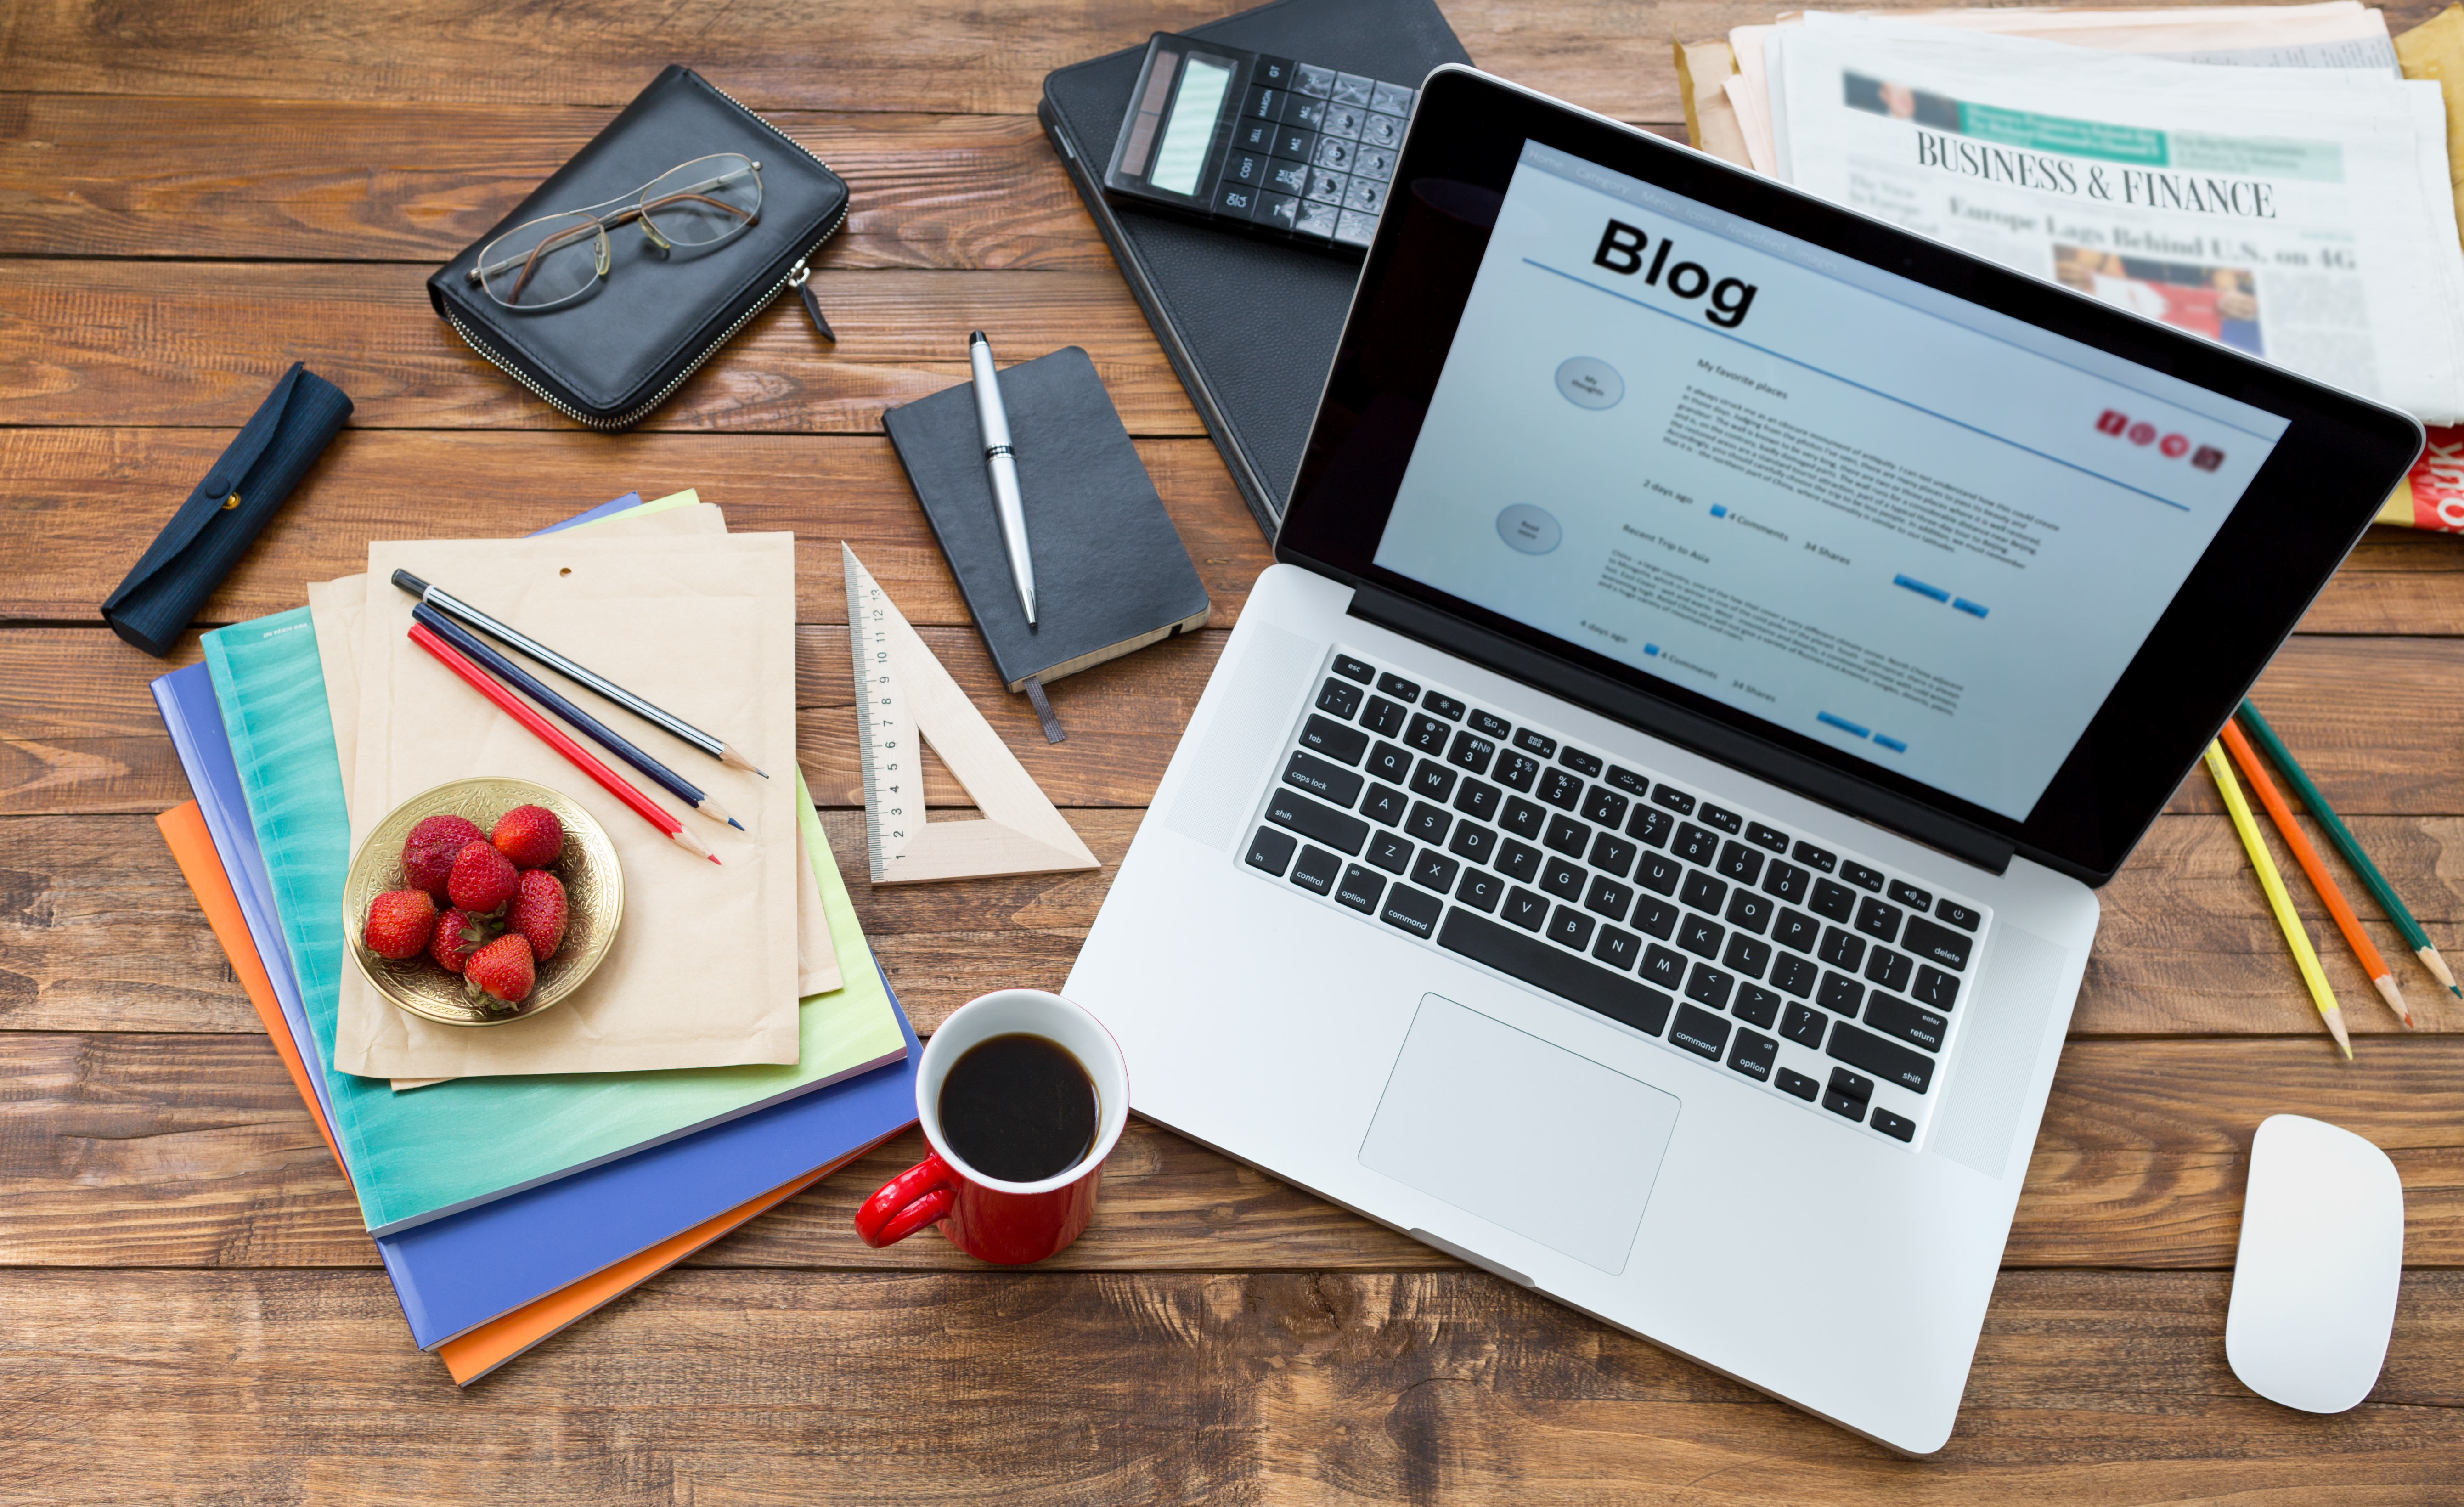 How to write a great business blog post